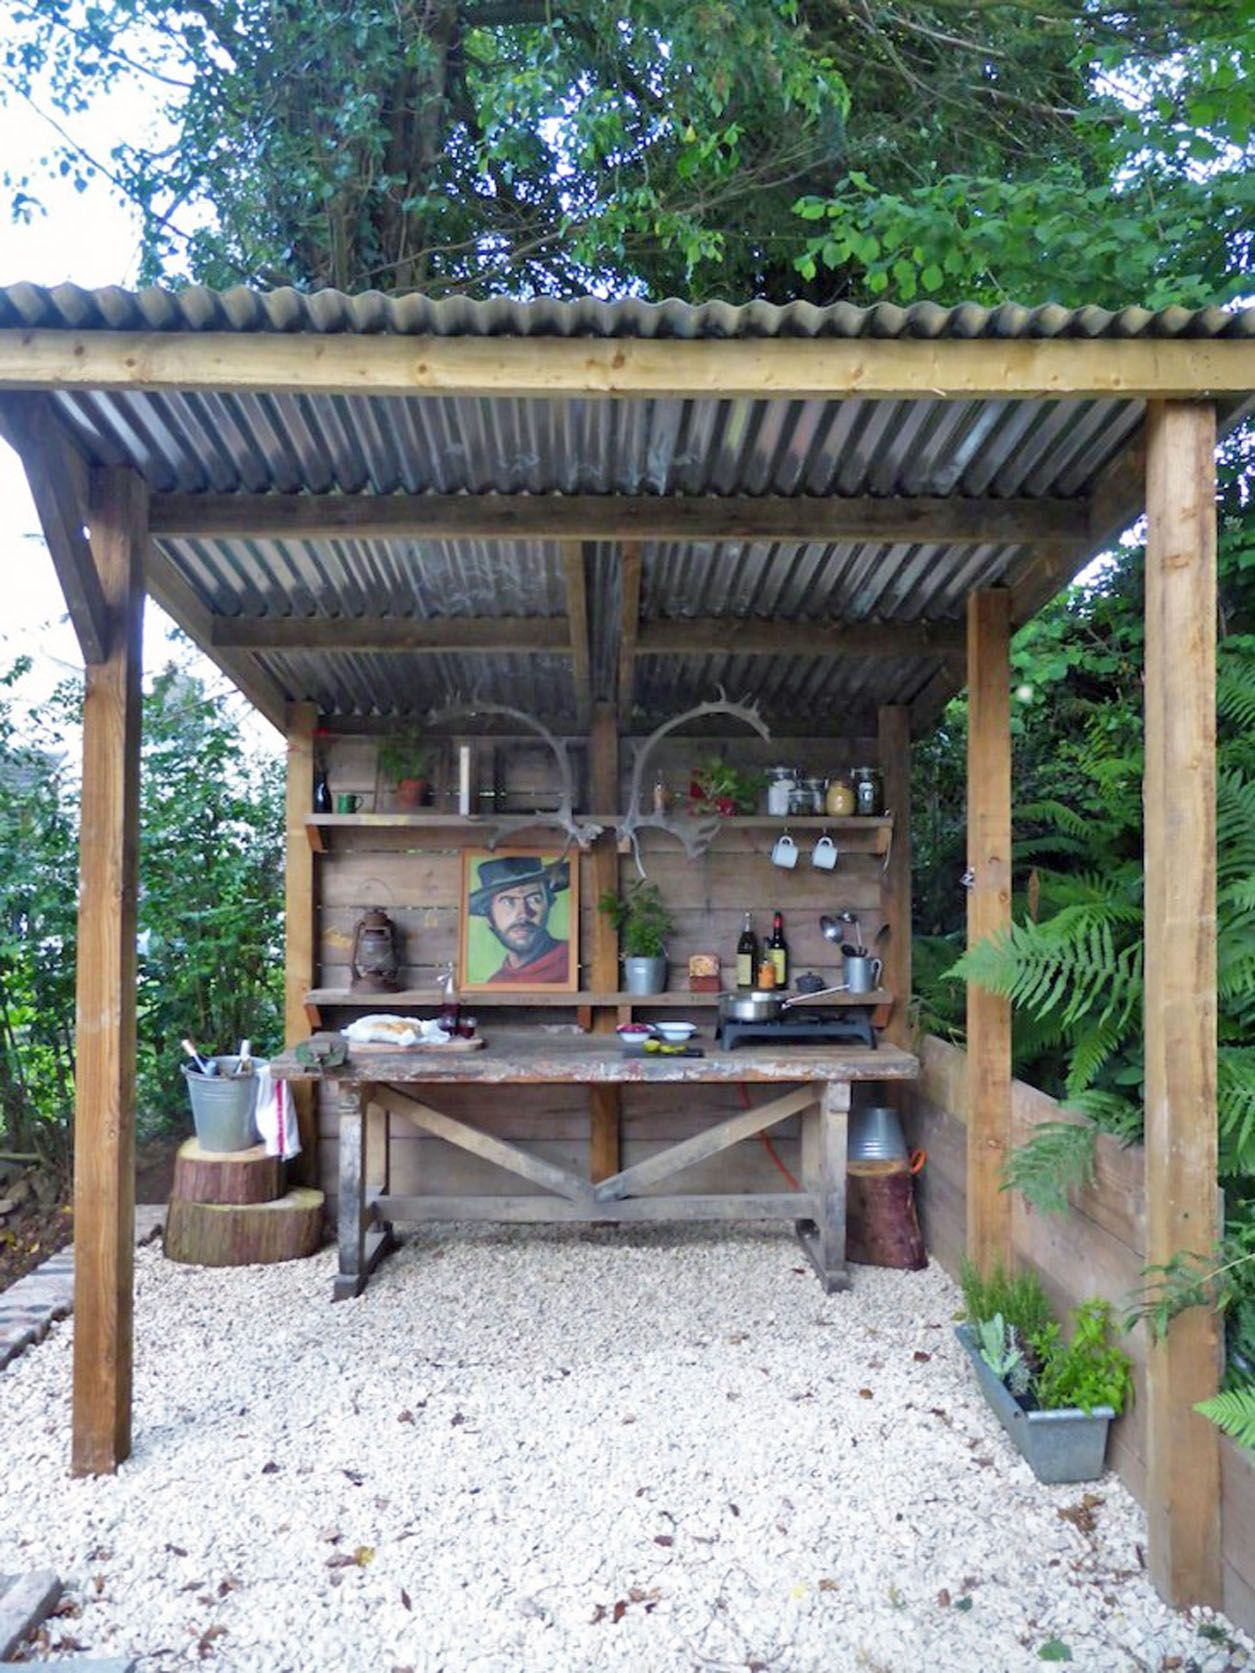 The Ultimate Garden Or Allotment Shelter I Shall Be